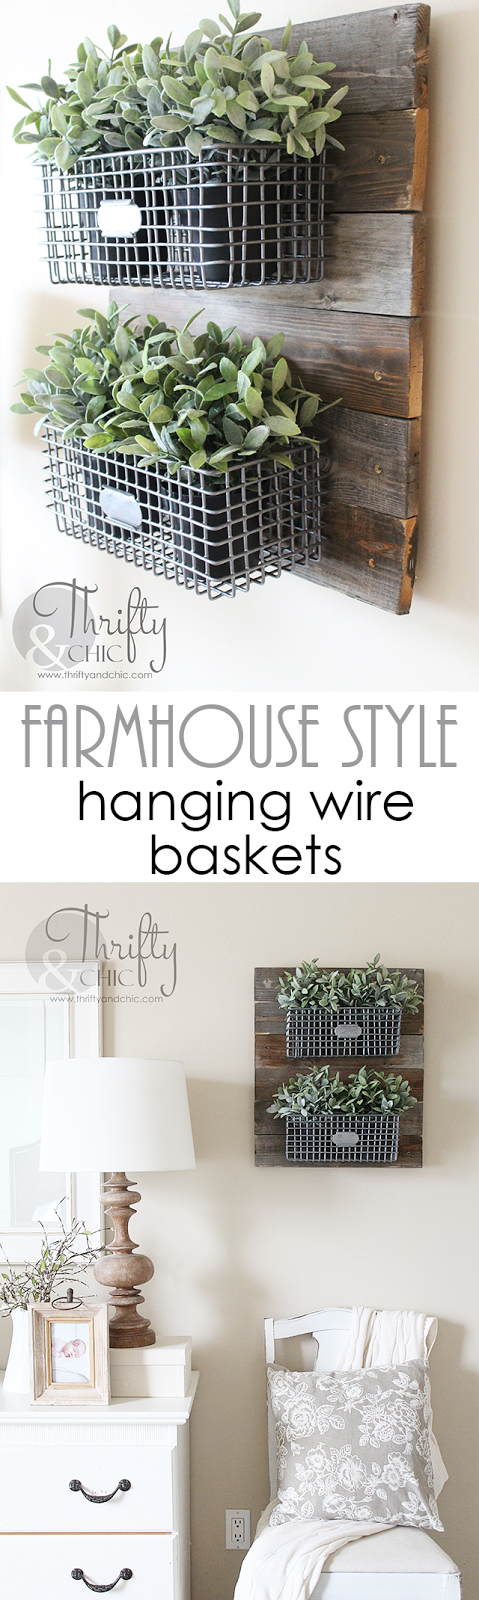 DIY Farmhouse Style Hanging Wire Baskets On Reclaimed Wood | DIY ...